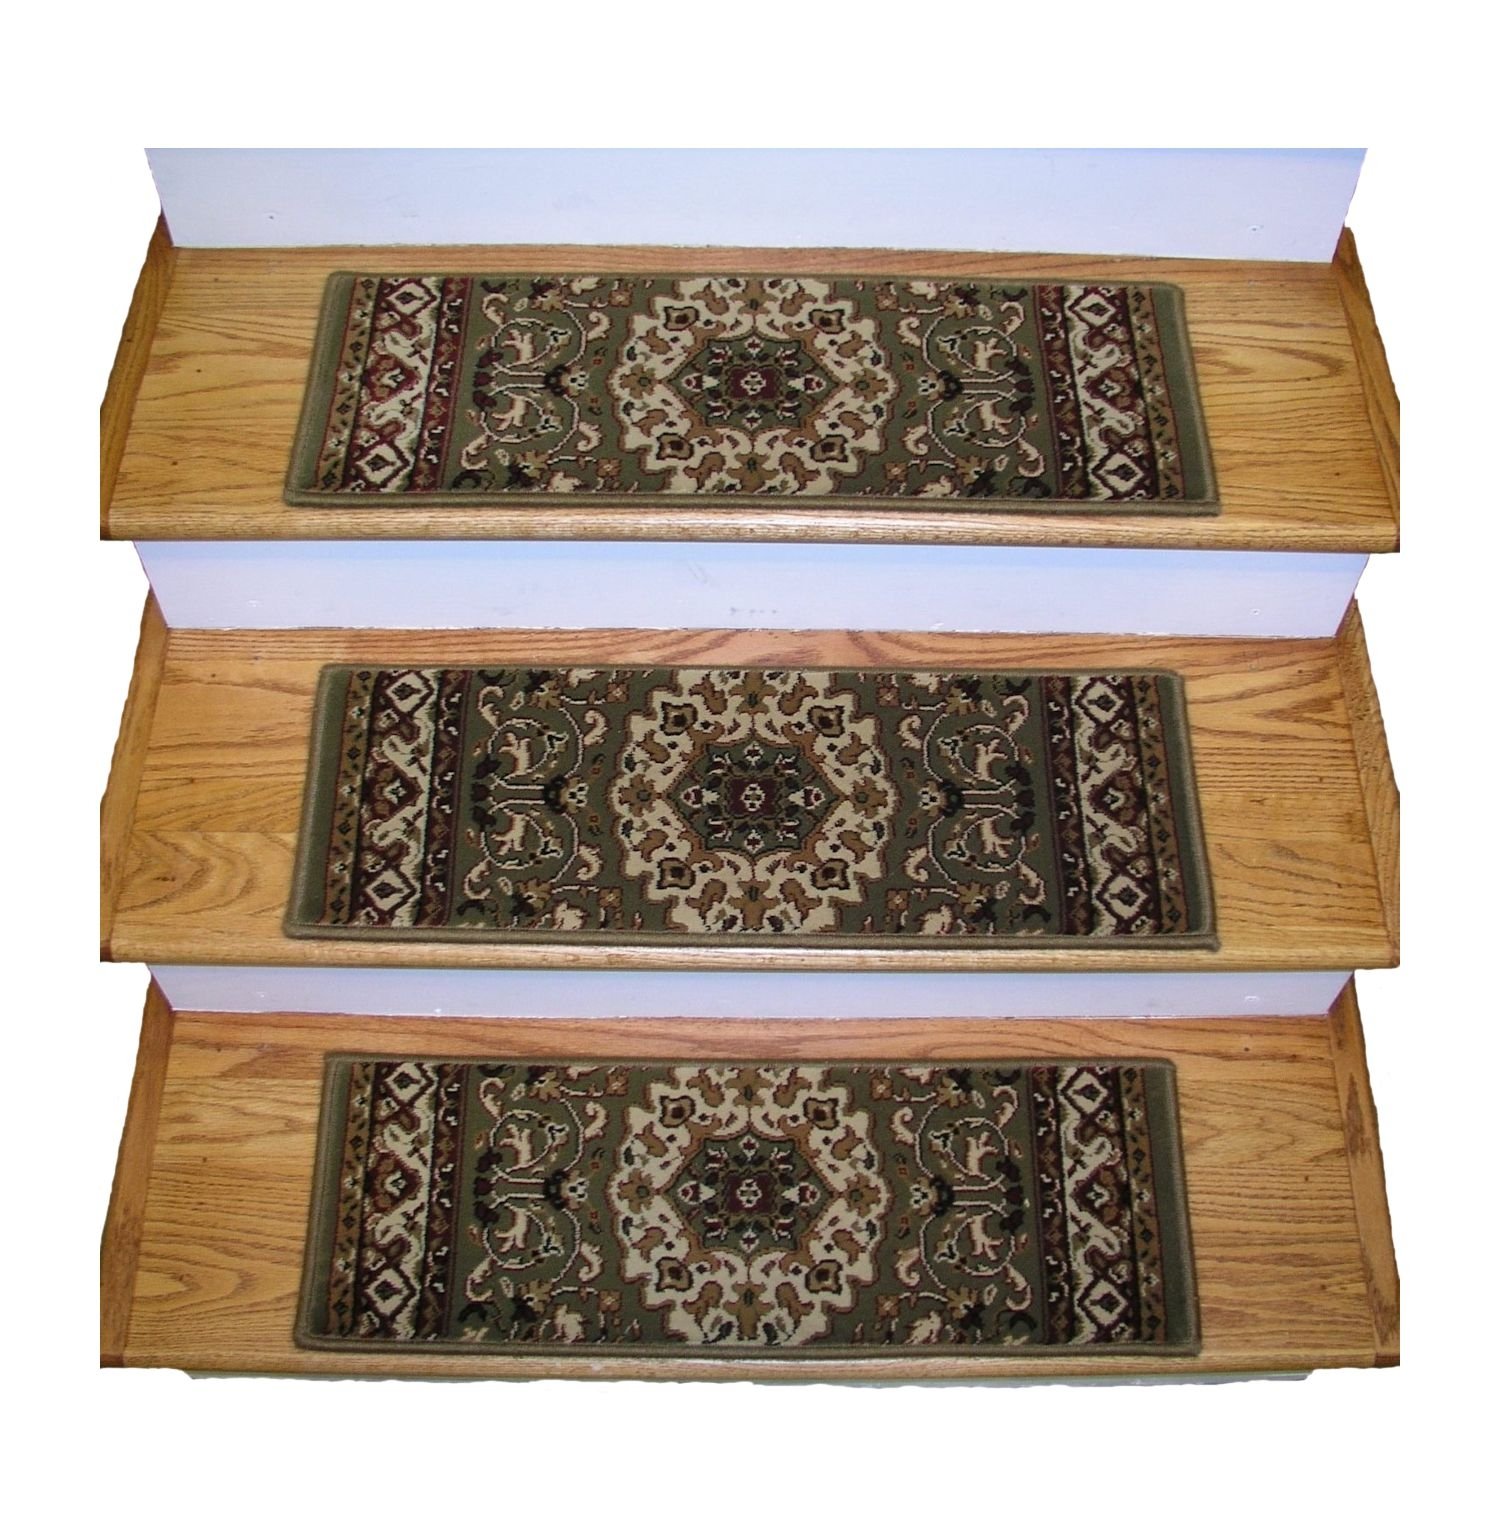 Flooring Pretty Stair Treads Carpet For Stair Decoration Idea Pertaining To Non Slip Carpet For Stairs (#11 of 20)